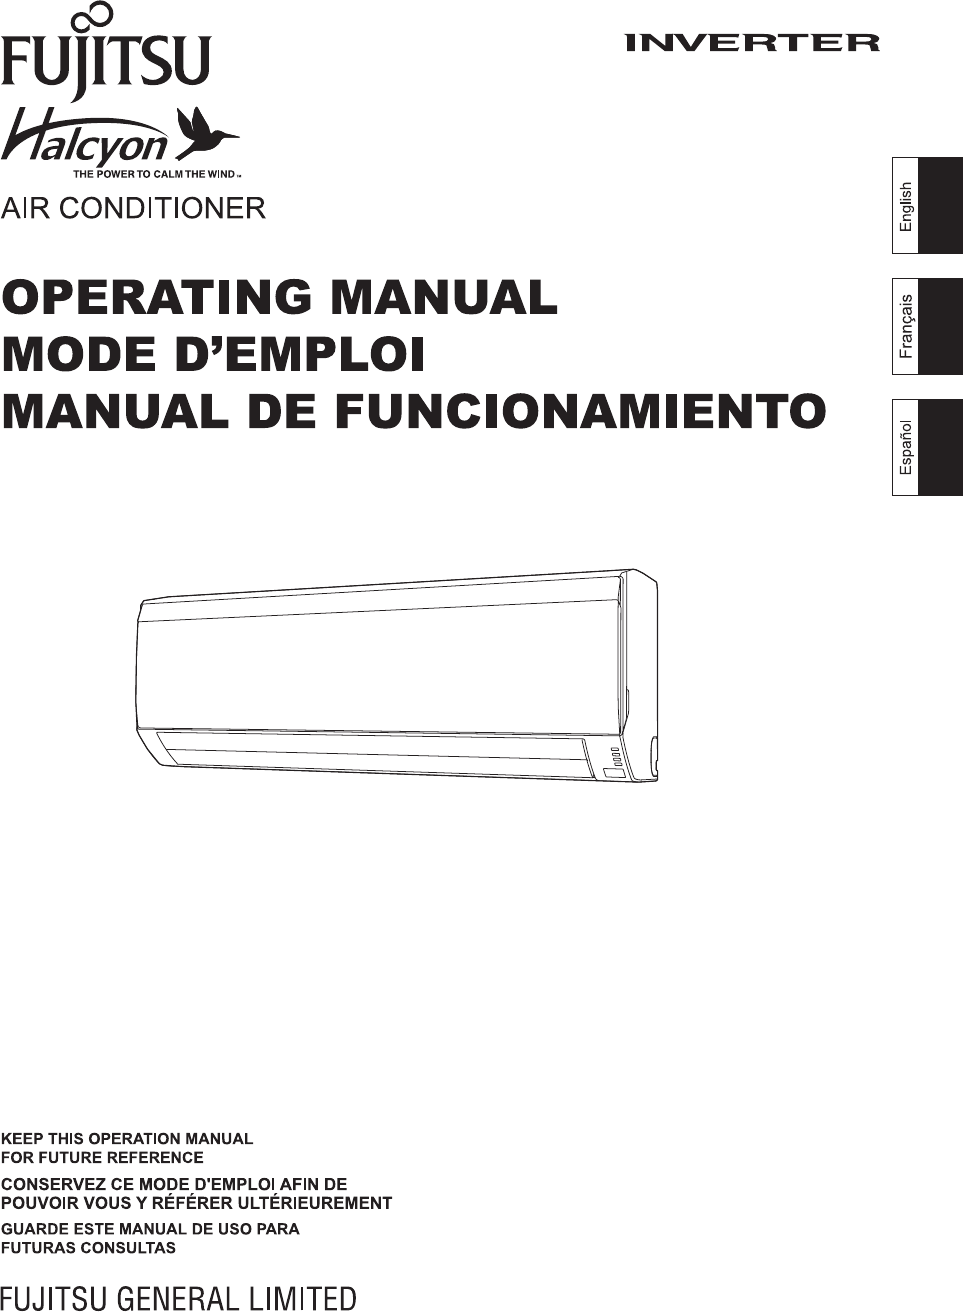 fujitsu superwave air conditioner manual